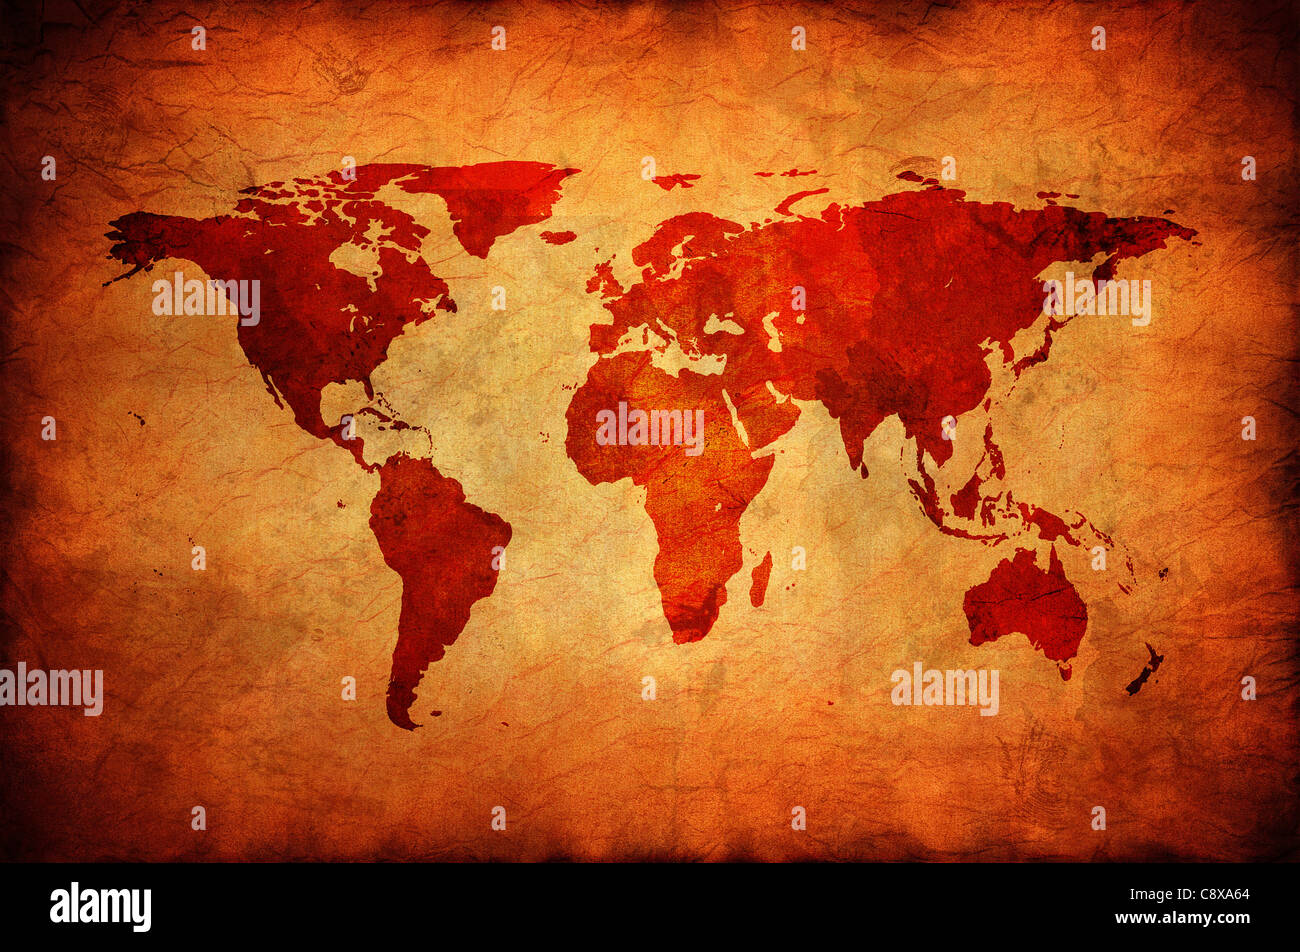 World map on a old canvas. - Stock Image